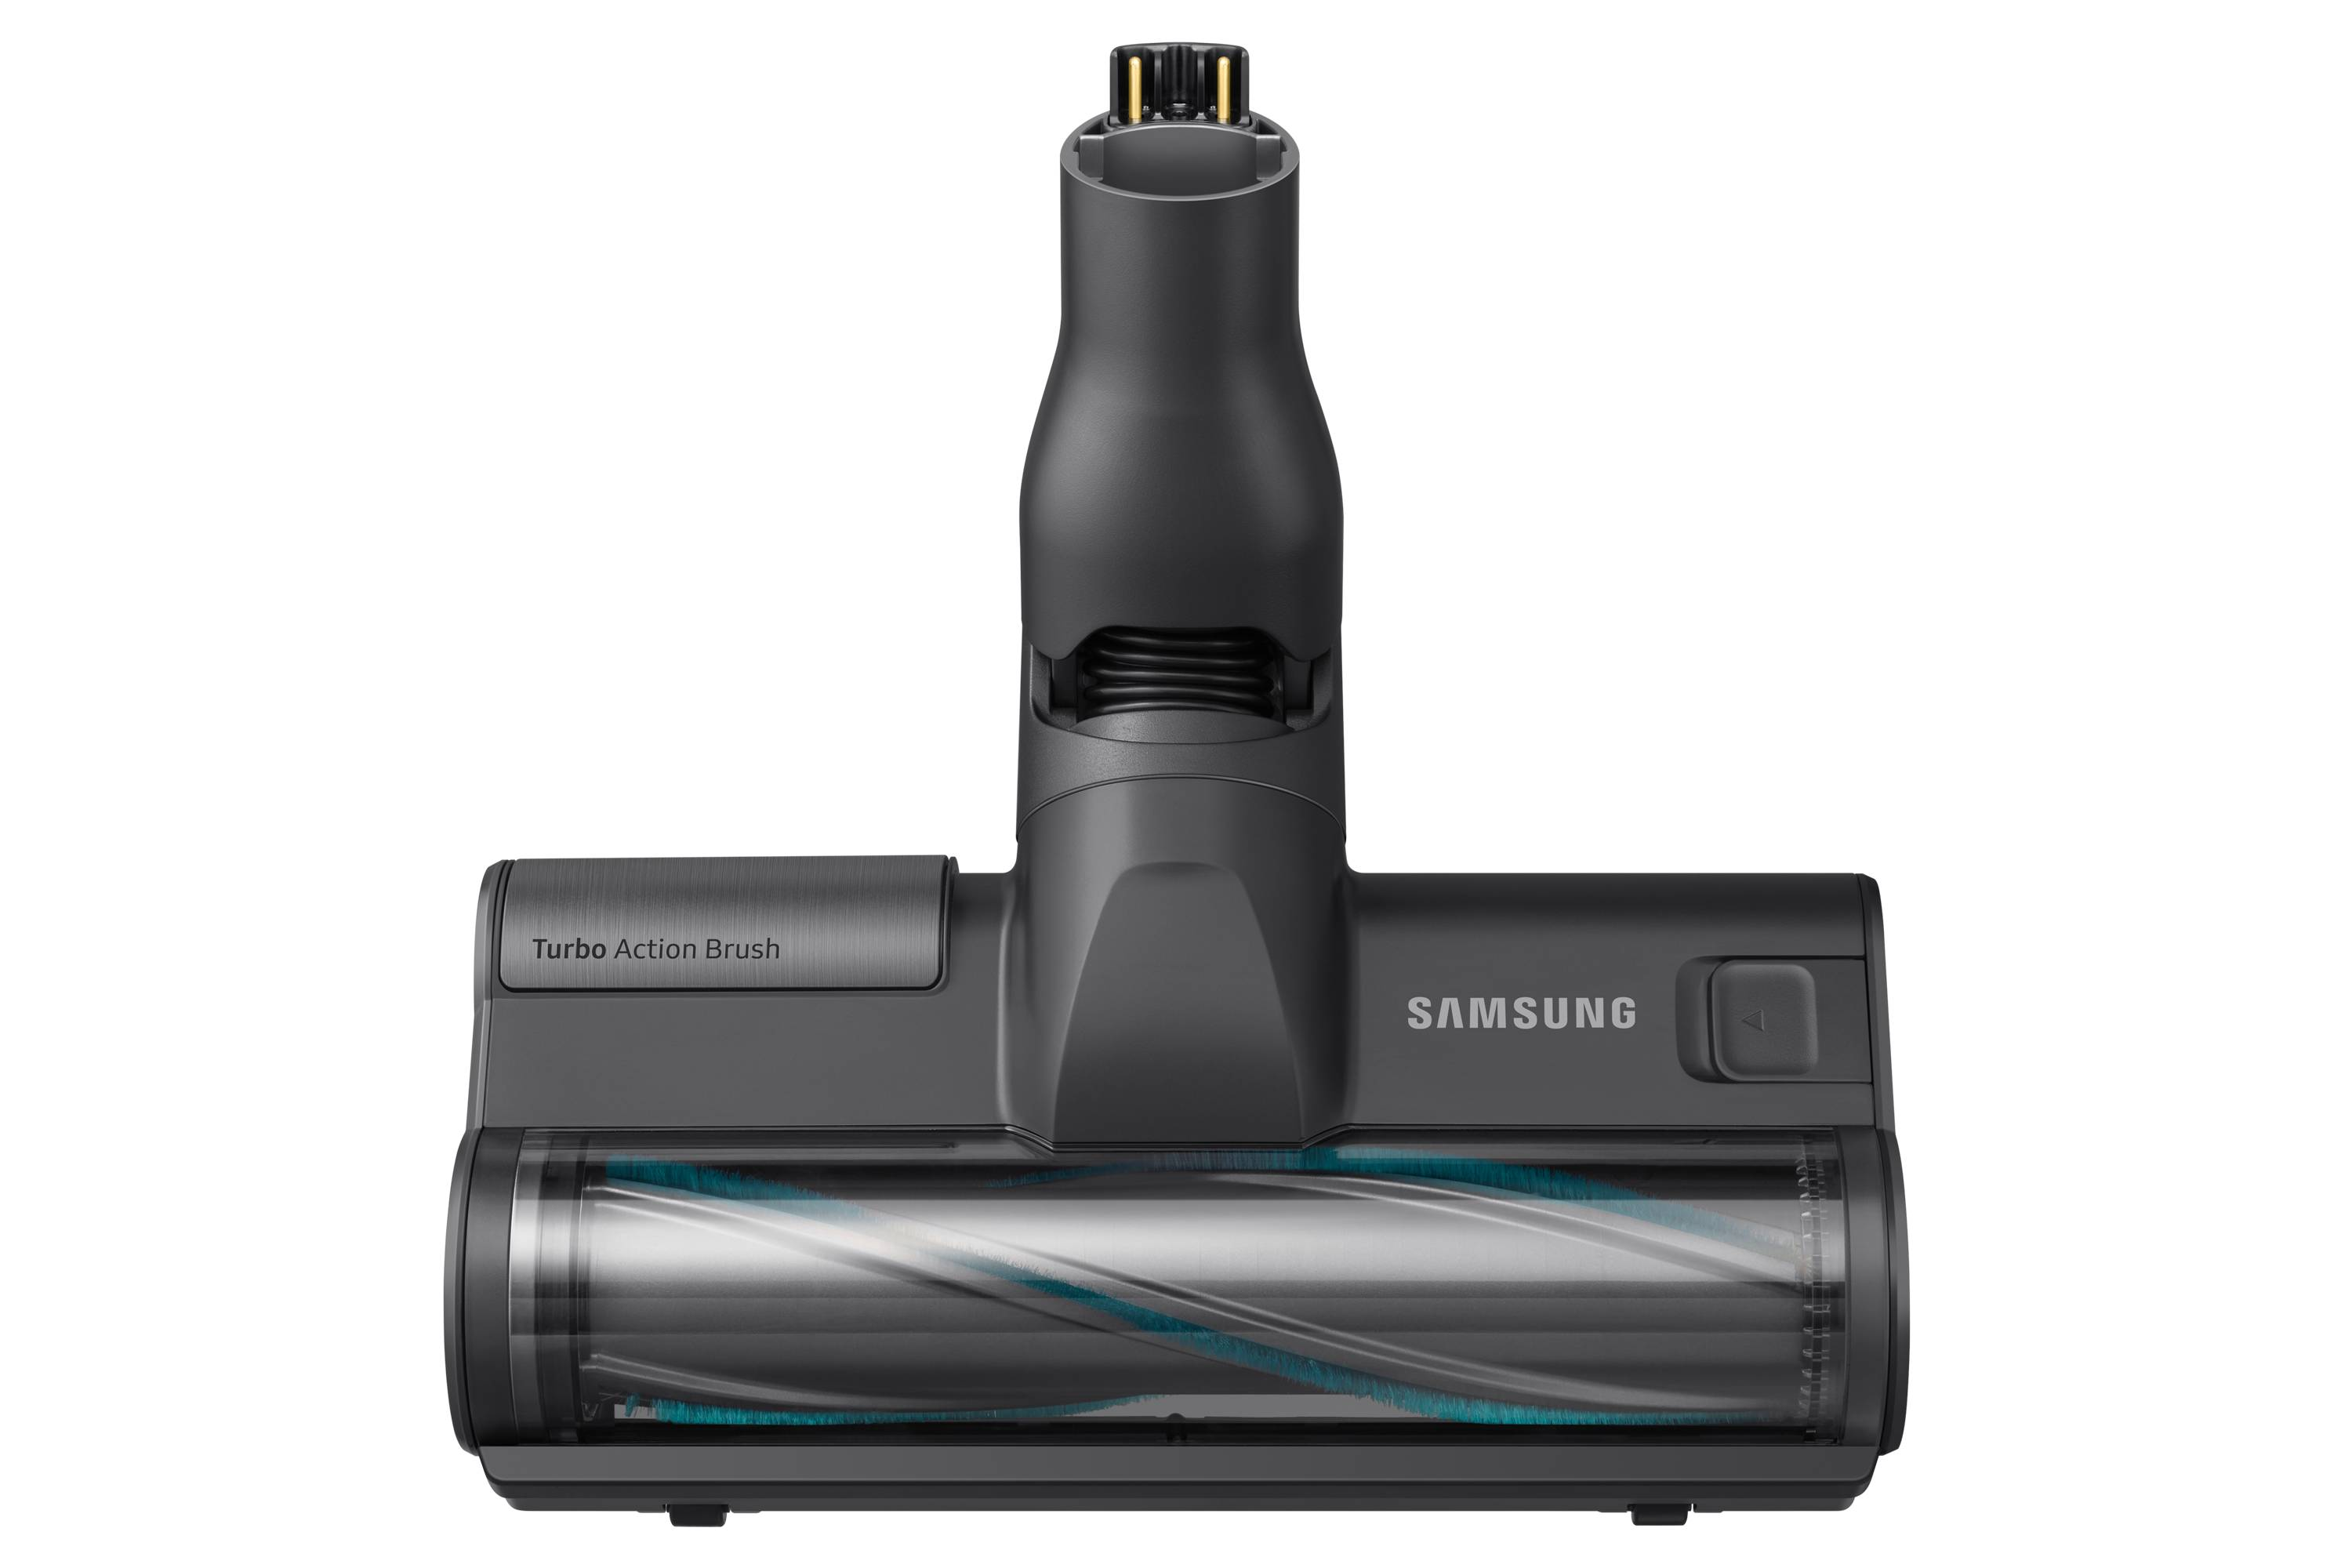 Samsung Turbo Action Brush Vacuum Accessory in Silver (VCA-TAB90)